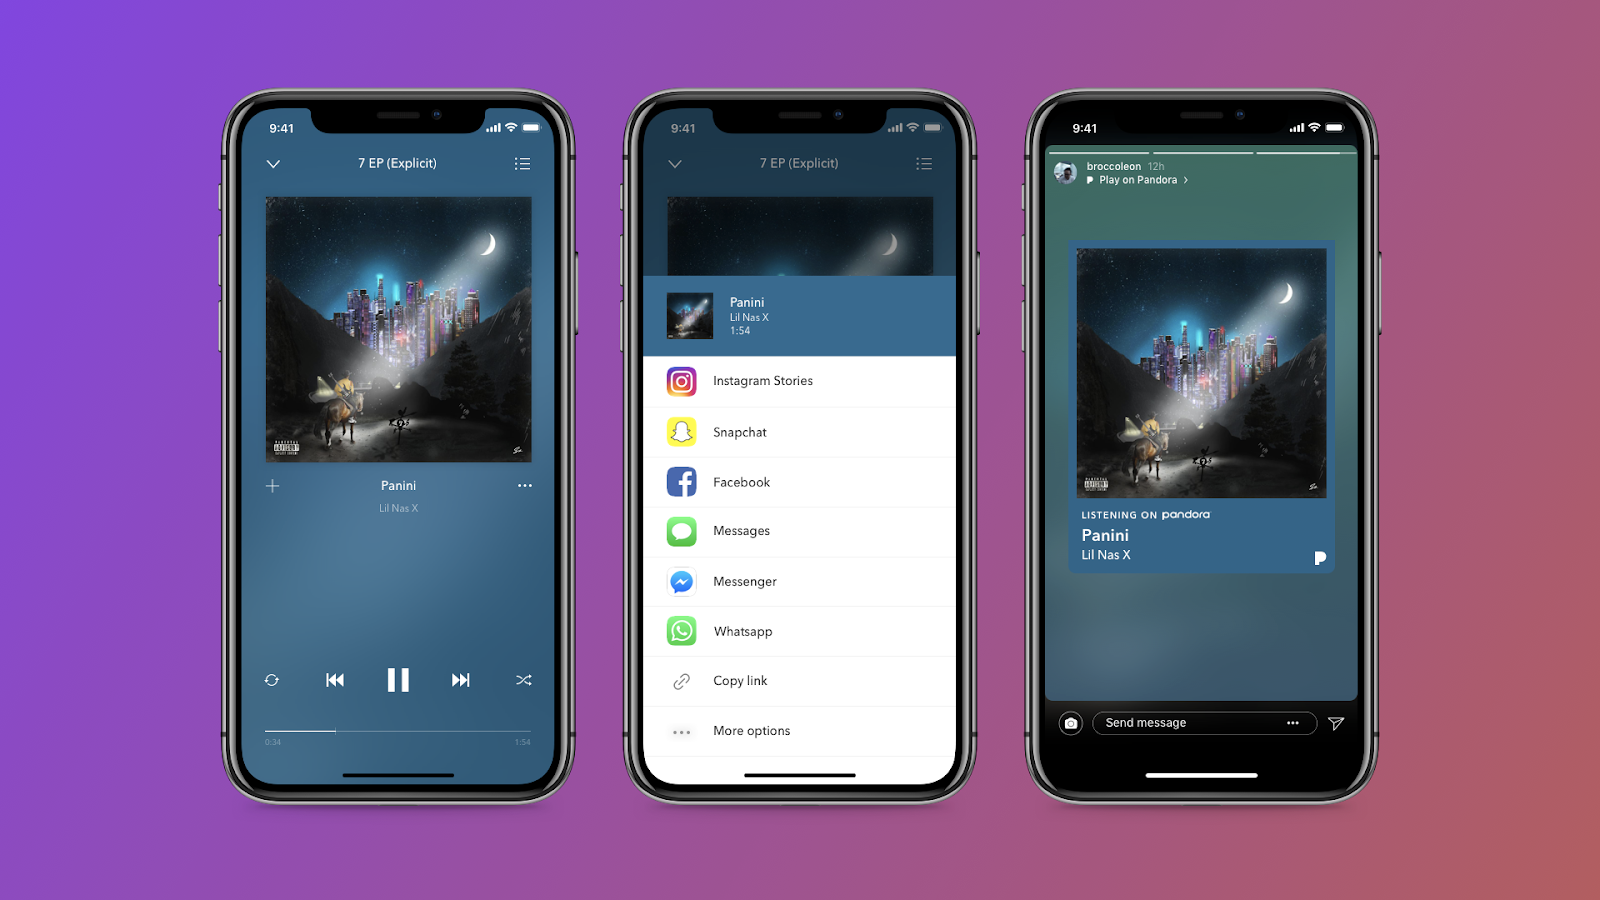 Sharing Music On Socials Has Never Been So Easy